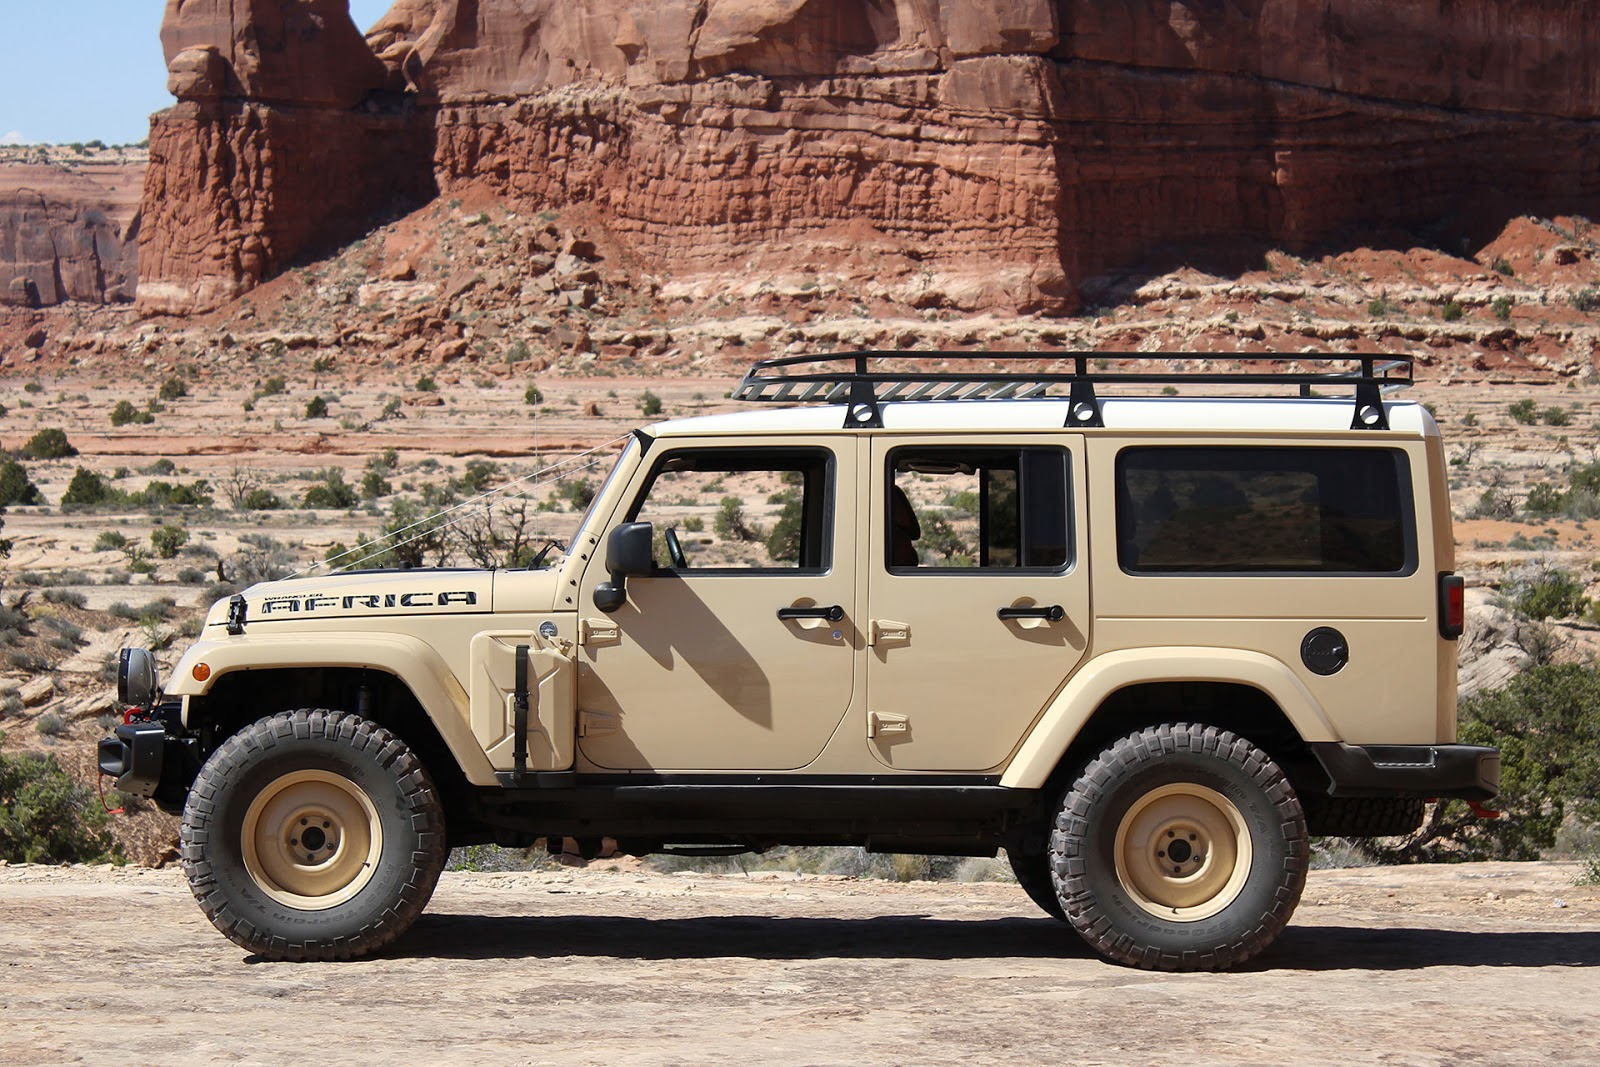 169 Automotiveblogz Jeep Wrangler Africa Moab Easter Jeep